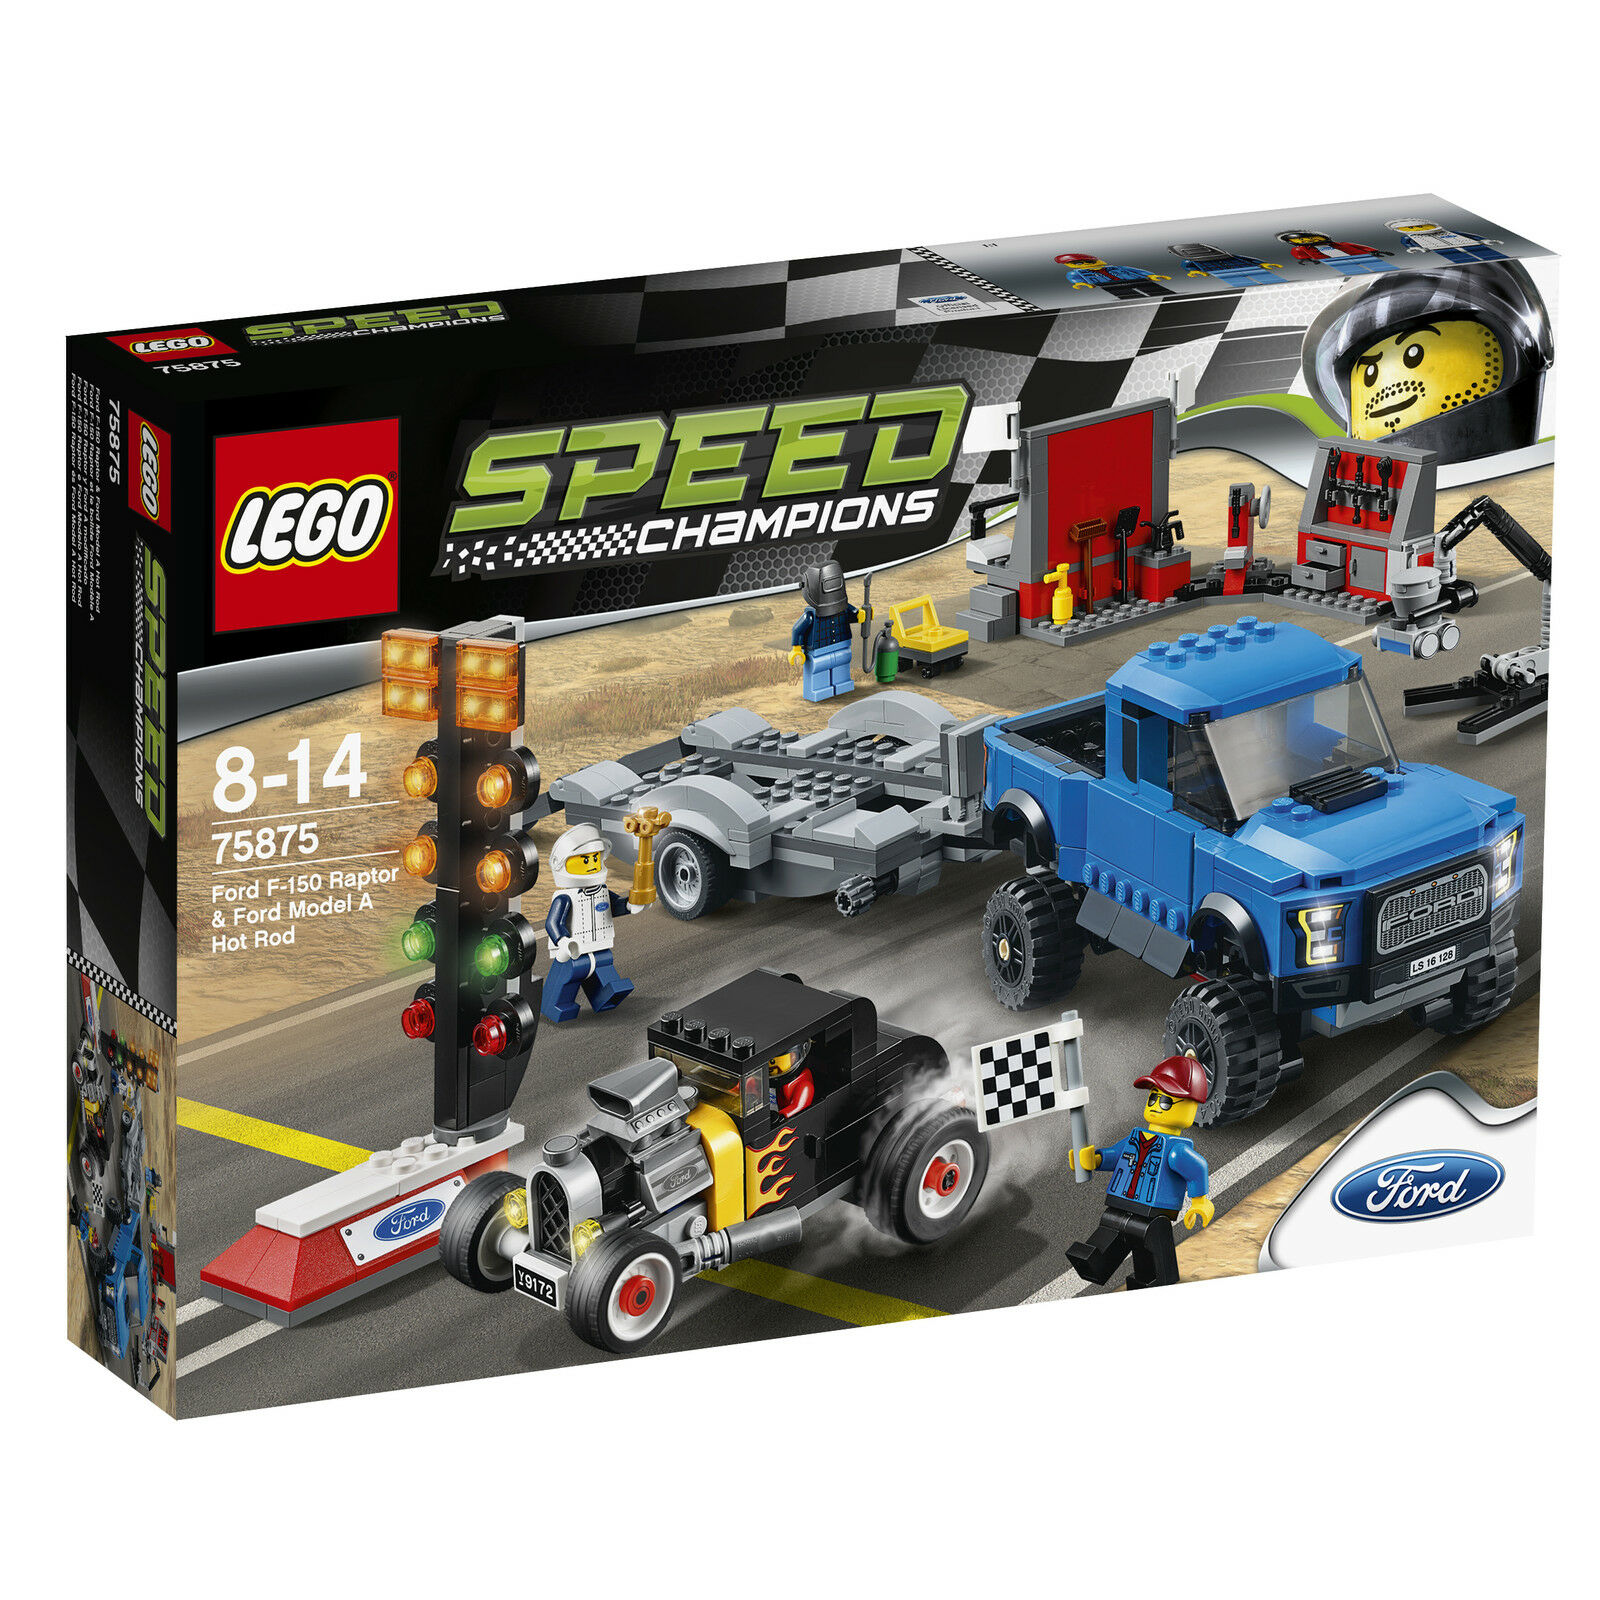 LEGO ® Speed Champions 75875 FORD f-150 Raptor & Ford Model A Hot Rod Neuf neuf dans sa boîte New